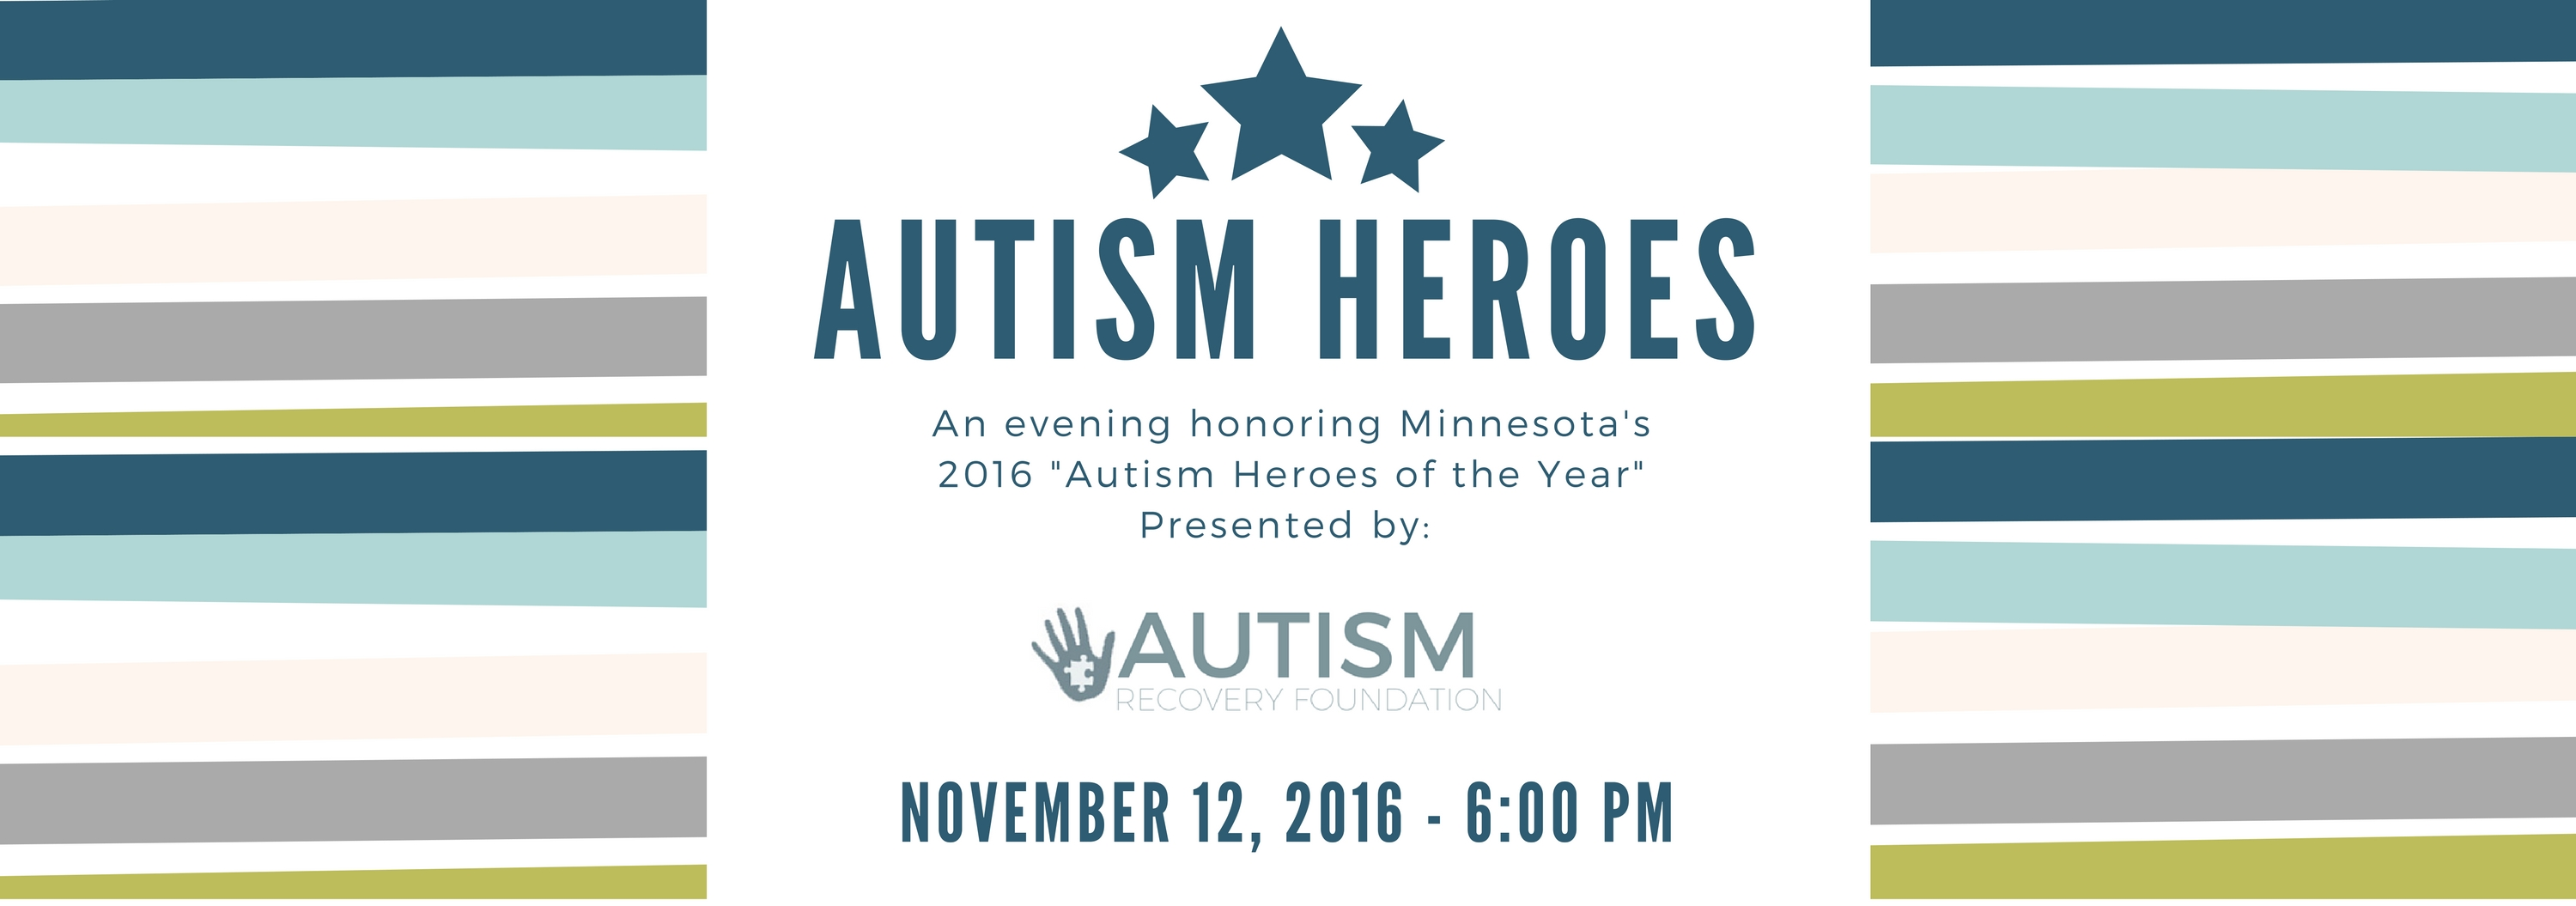 Autism Recovery Foundation